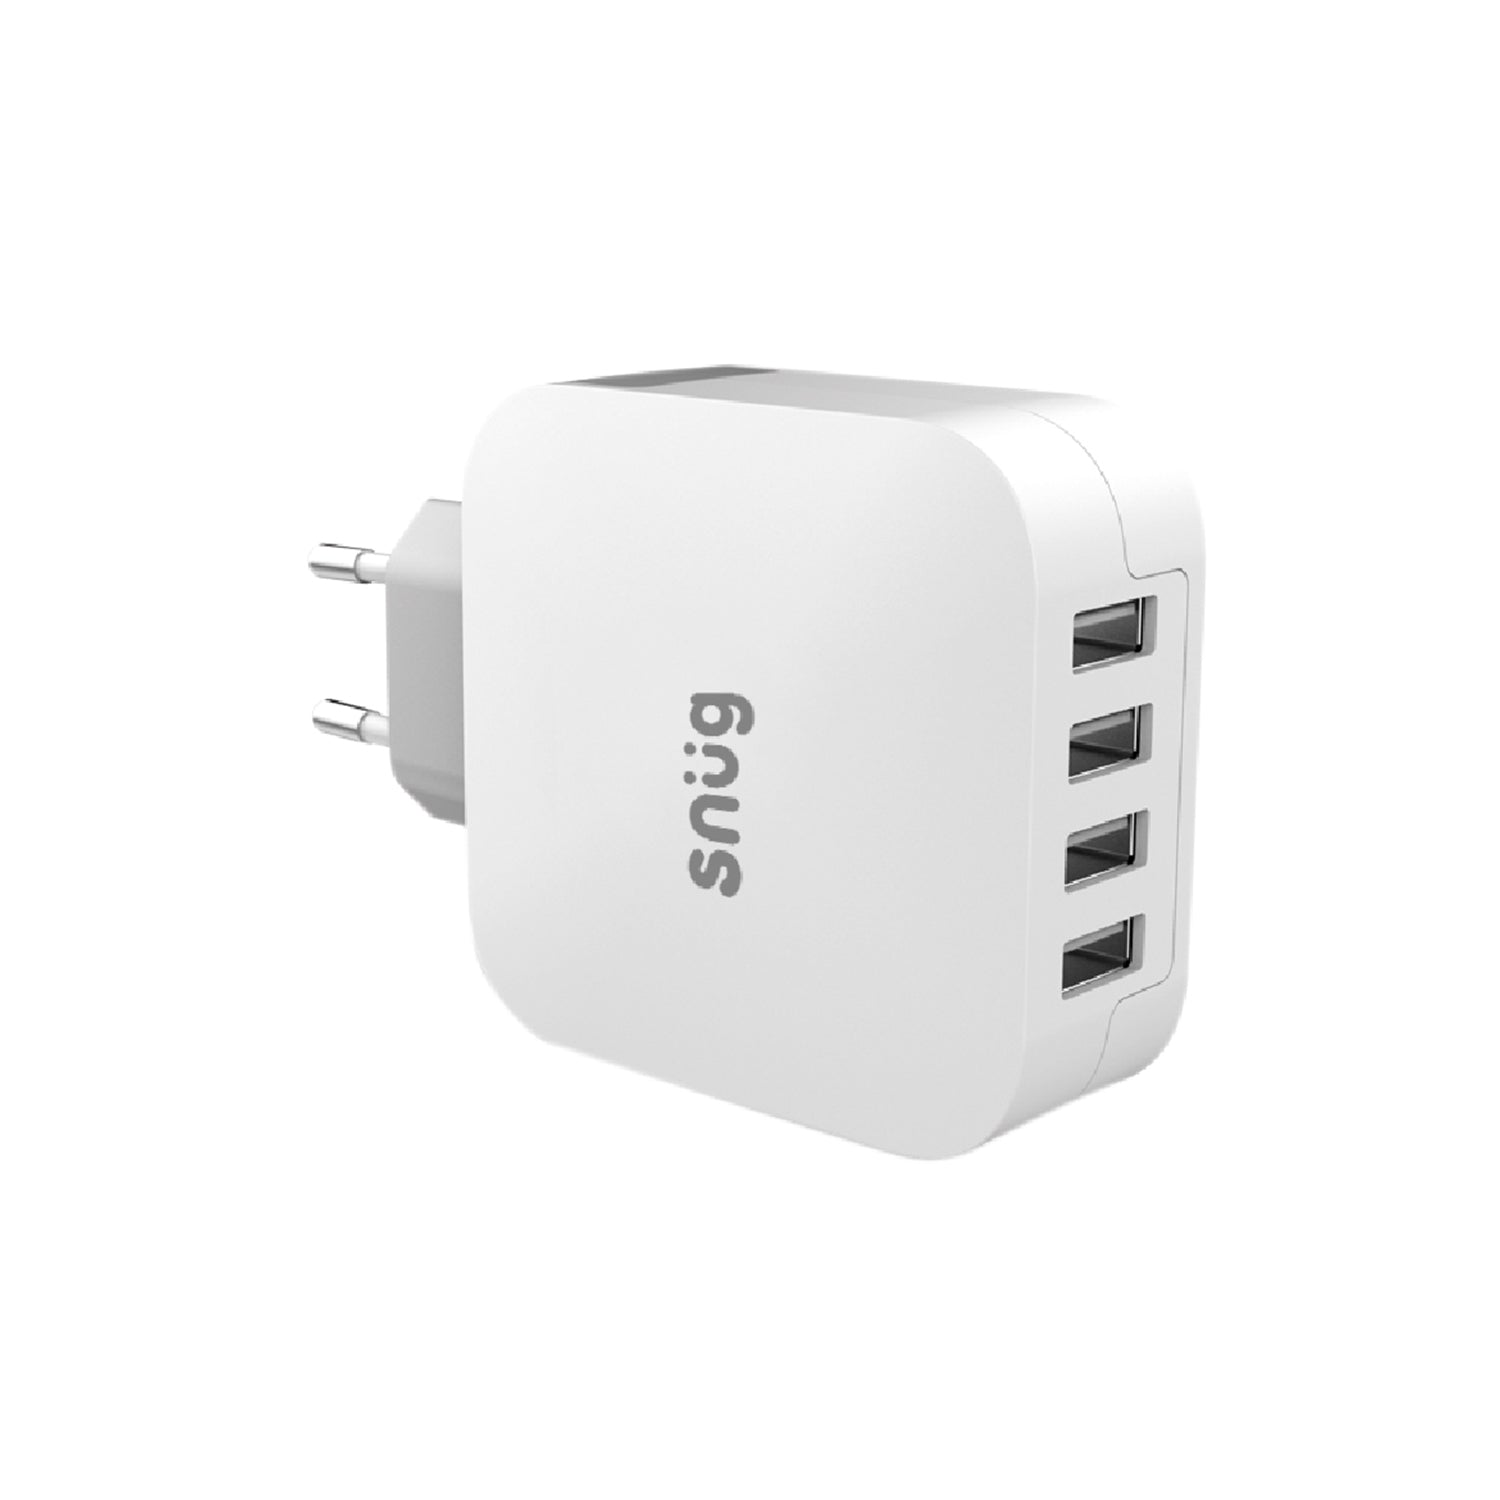 Snüg Home Charger 4 USB Port 4.8 Amp Charger